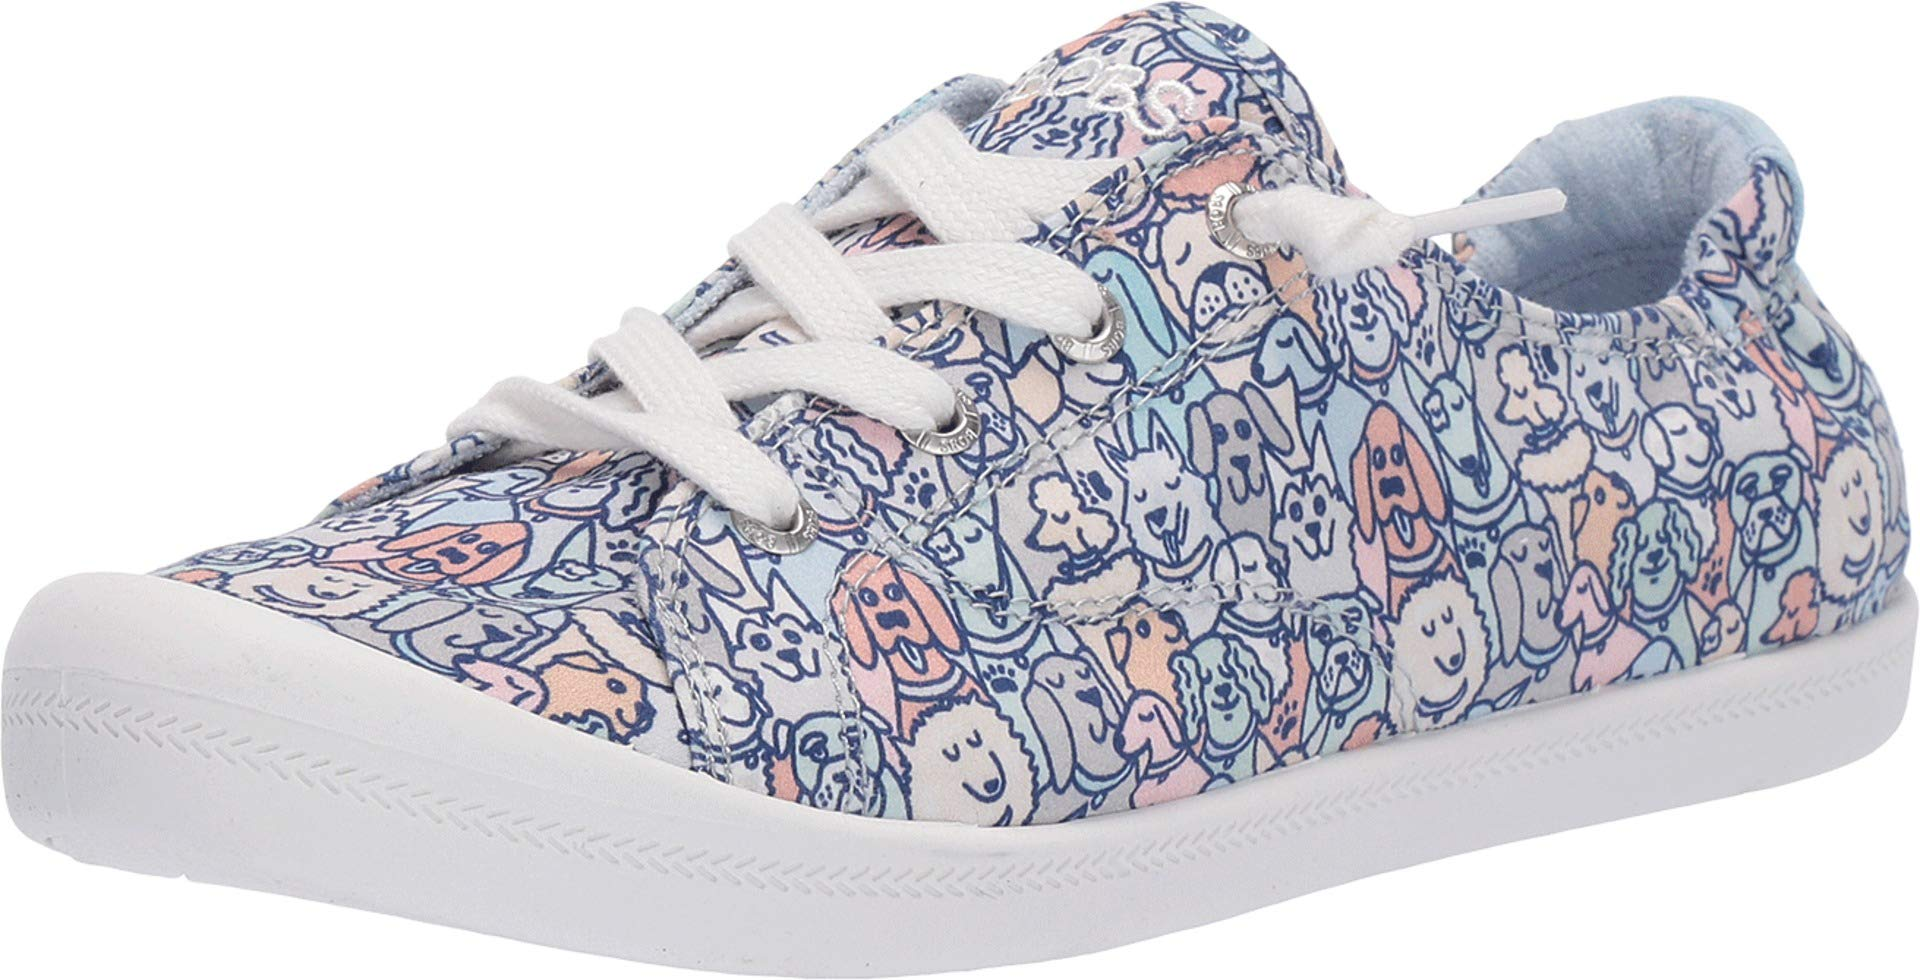 Skechers BOBS from Women's Beach Bingo - Woof Pack Blue/Pink 7.5 B US